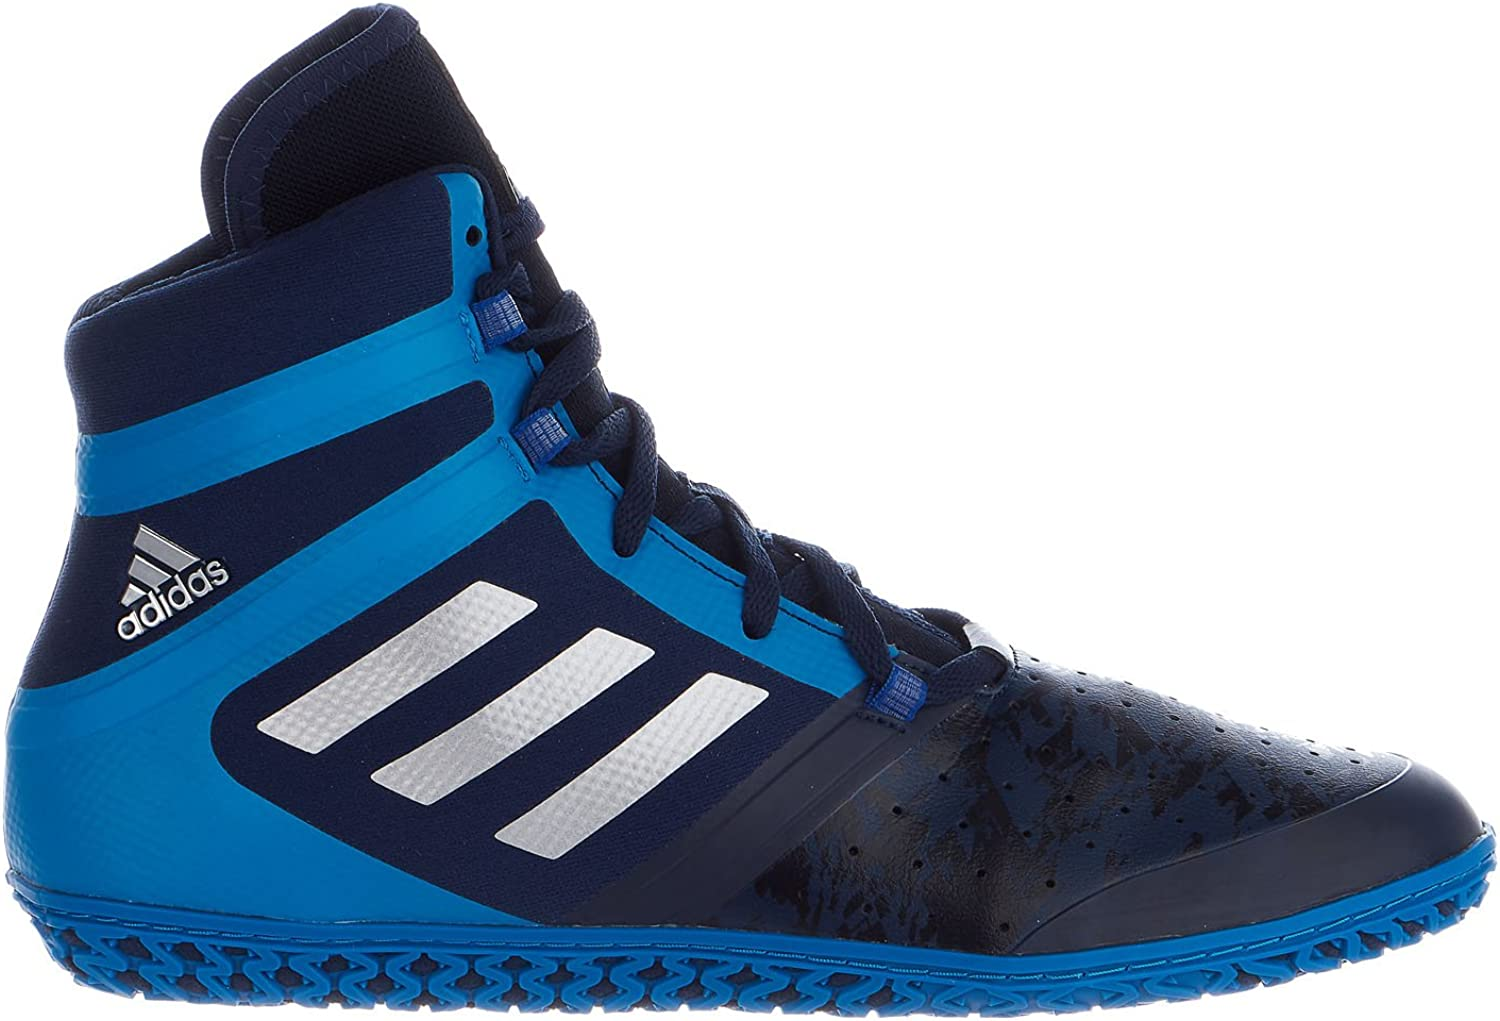 adidas Impact Wrestling Shoes - Navy/Silver/Royal - 11.5 71BK5VDS6pLUL1500_